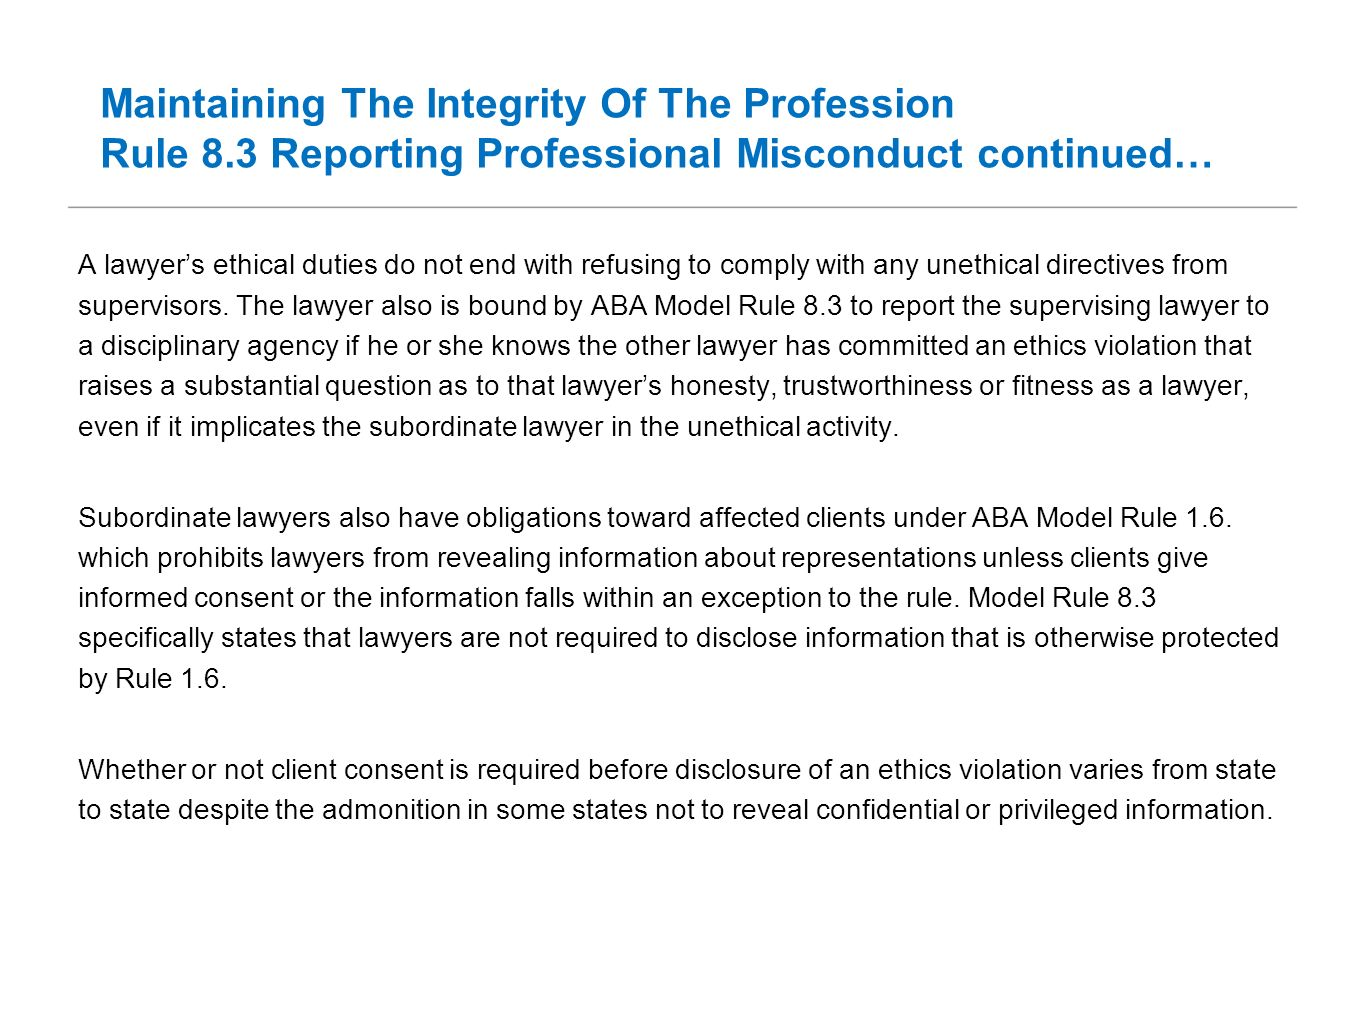 Maintaining The Integrity Of The Profession Rule 8